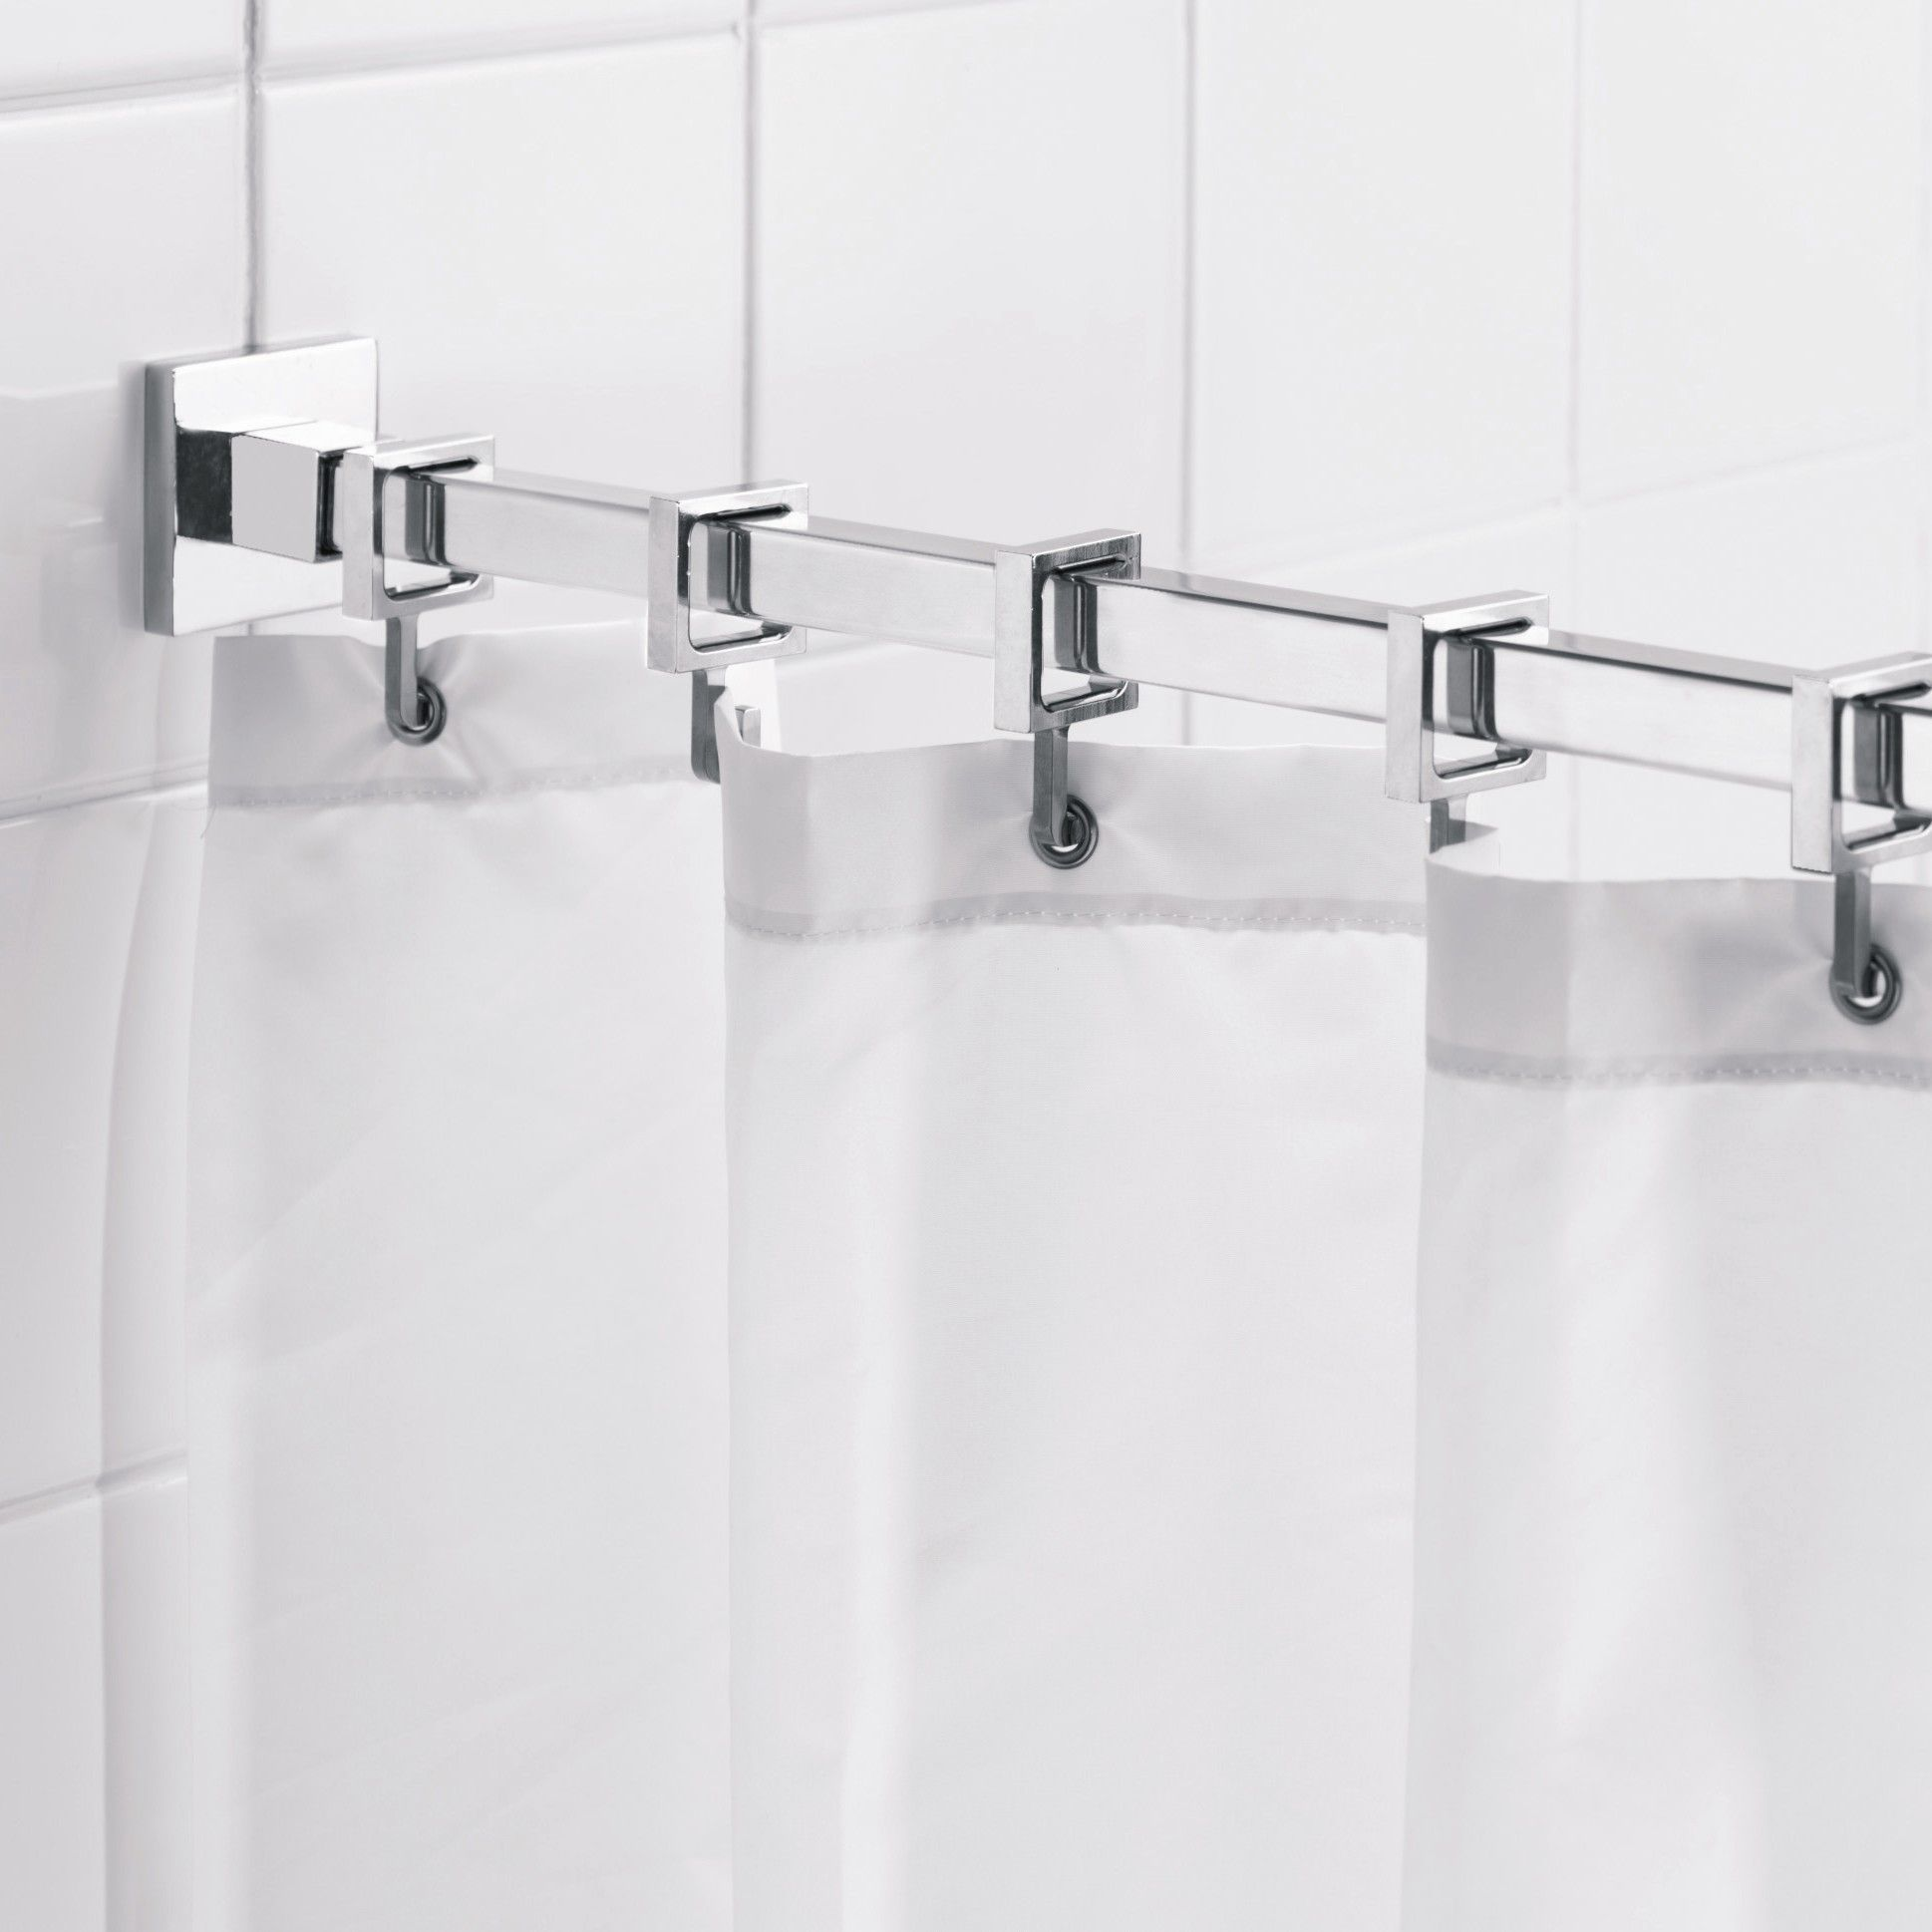 Features Chrome Plated Brass And Aluminum Wall Brackets Bright